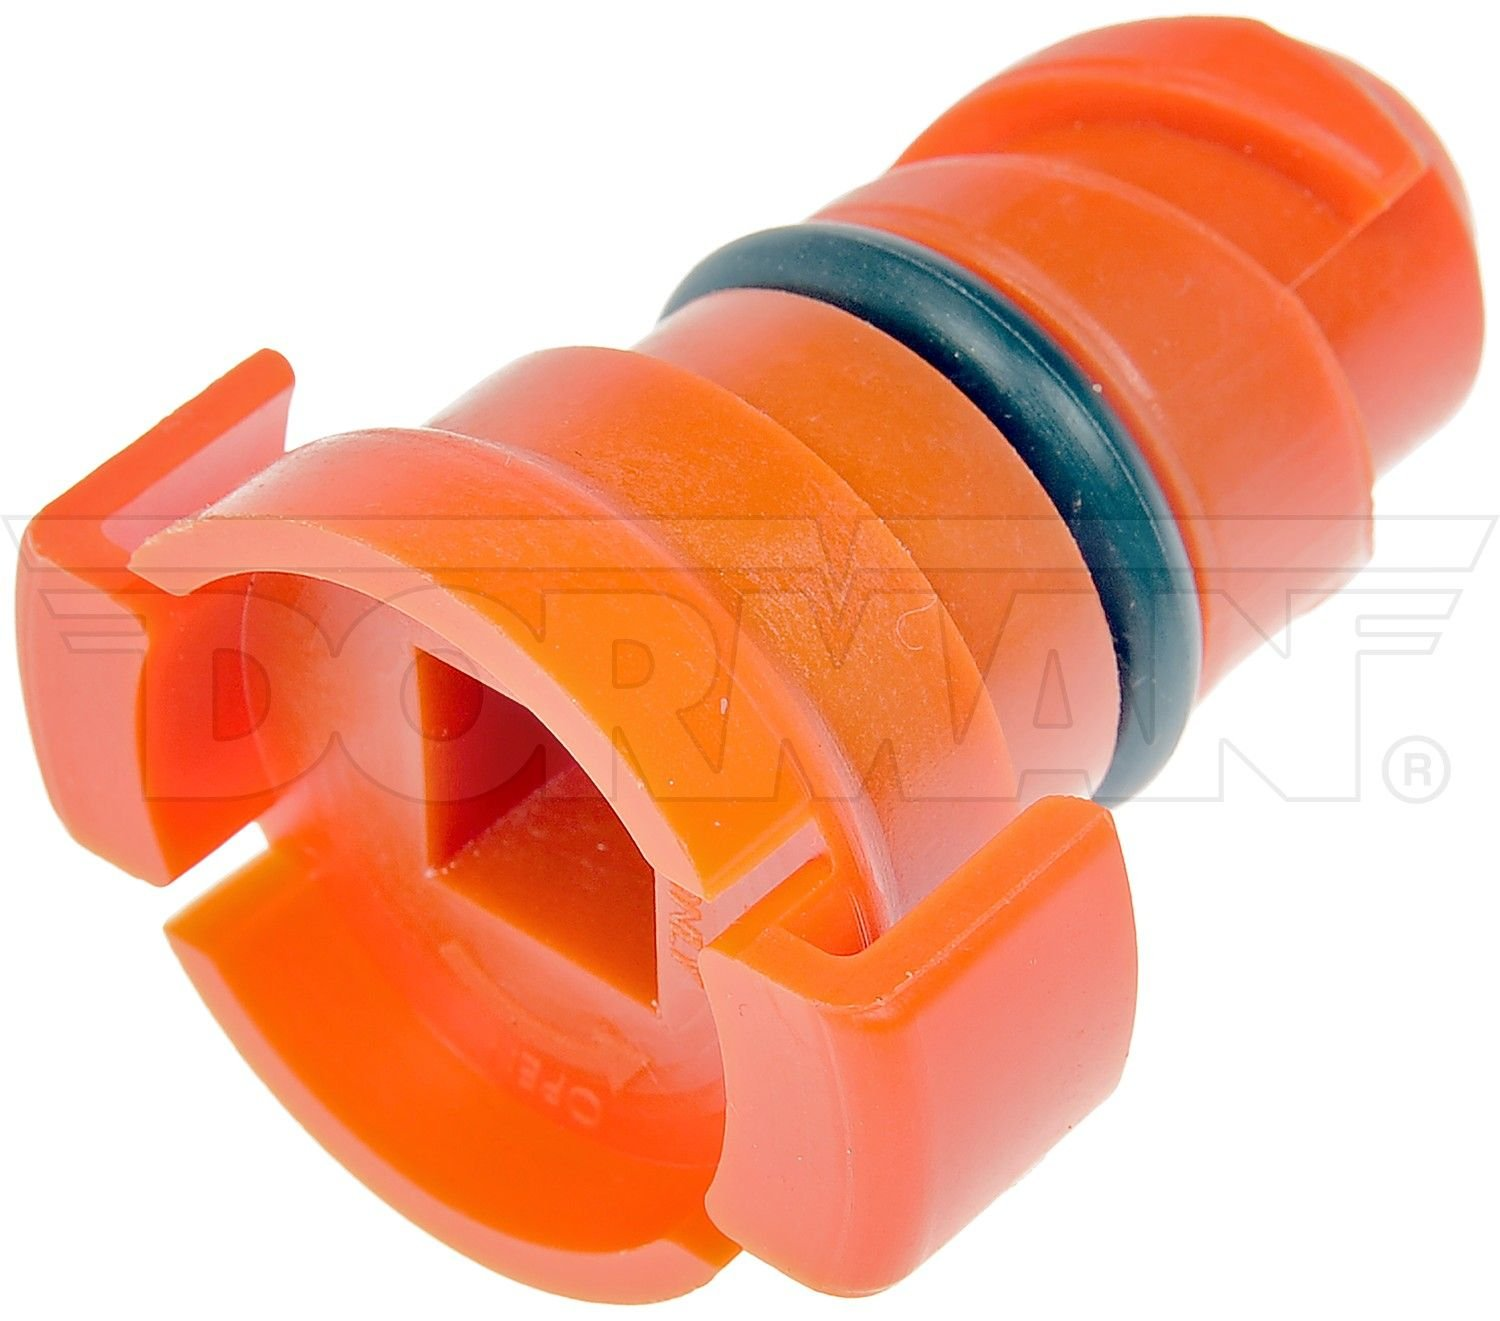 Ford Edge Engine Oil Drain Plug N A  L Dorman   Describe Type Locking Head For Nylon Oil Pan Shank Length In   In Package